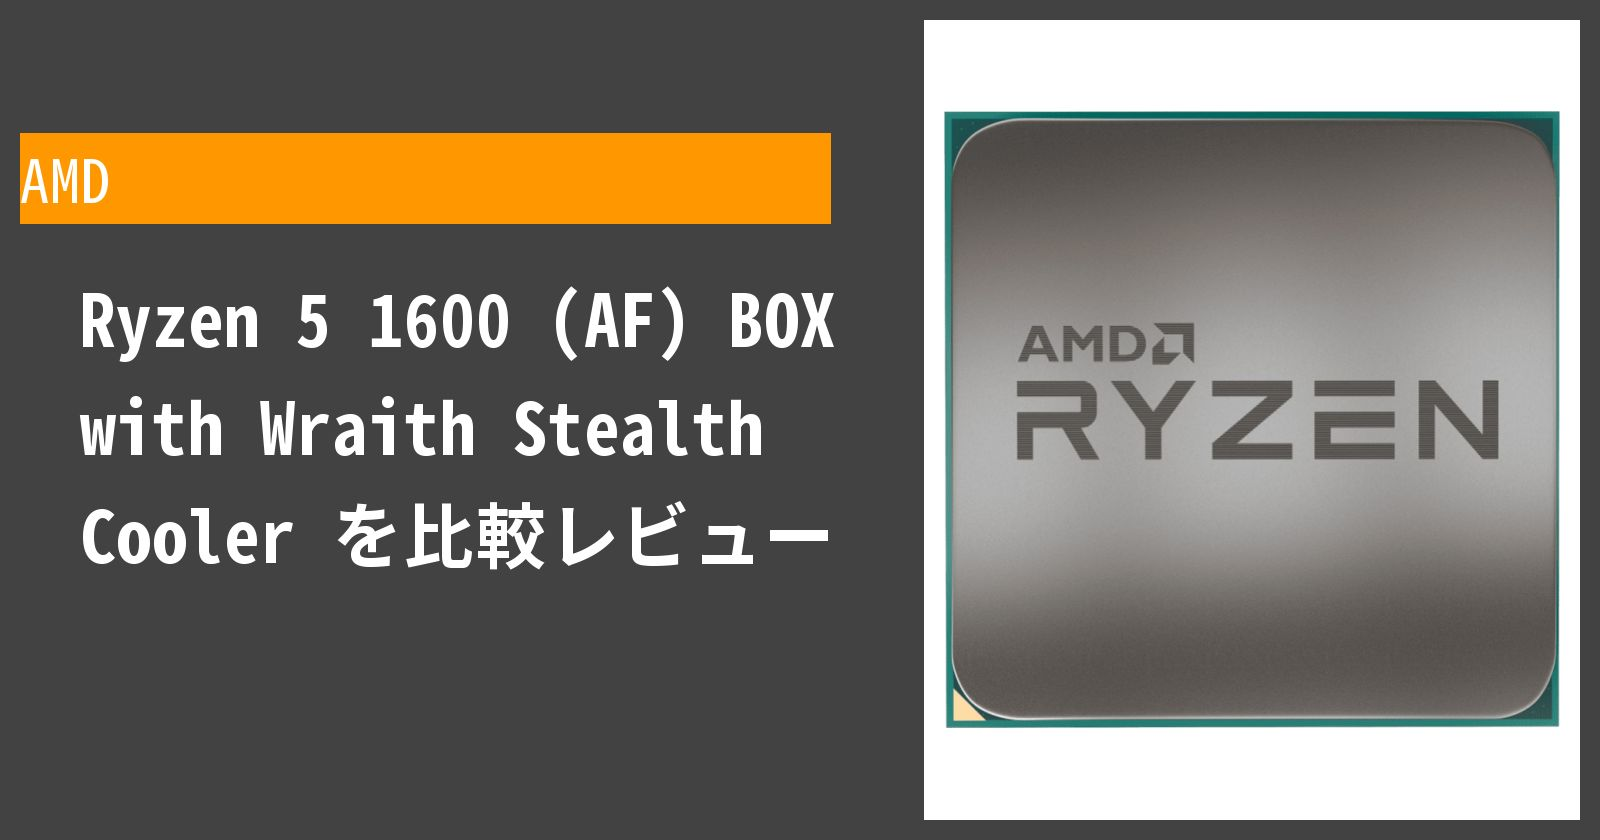 Ryzen 5 1600 (AF) BOX with Wraith Stealth Coolerを徹底評価